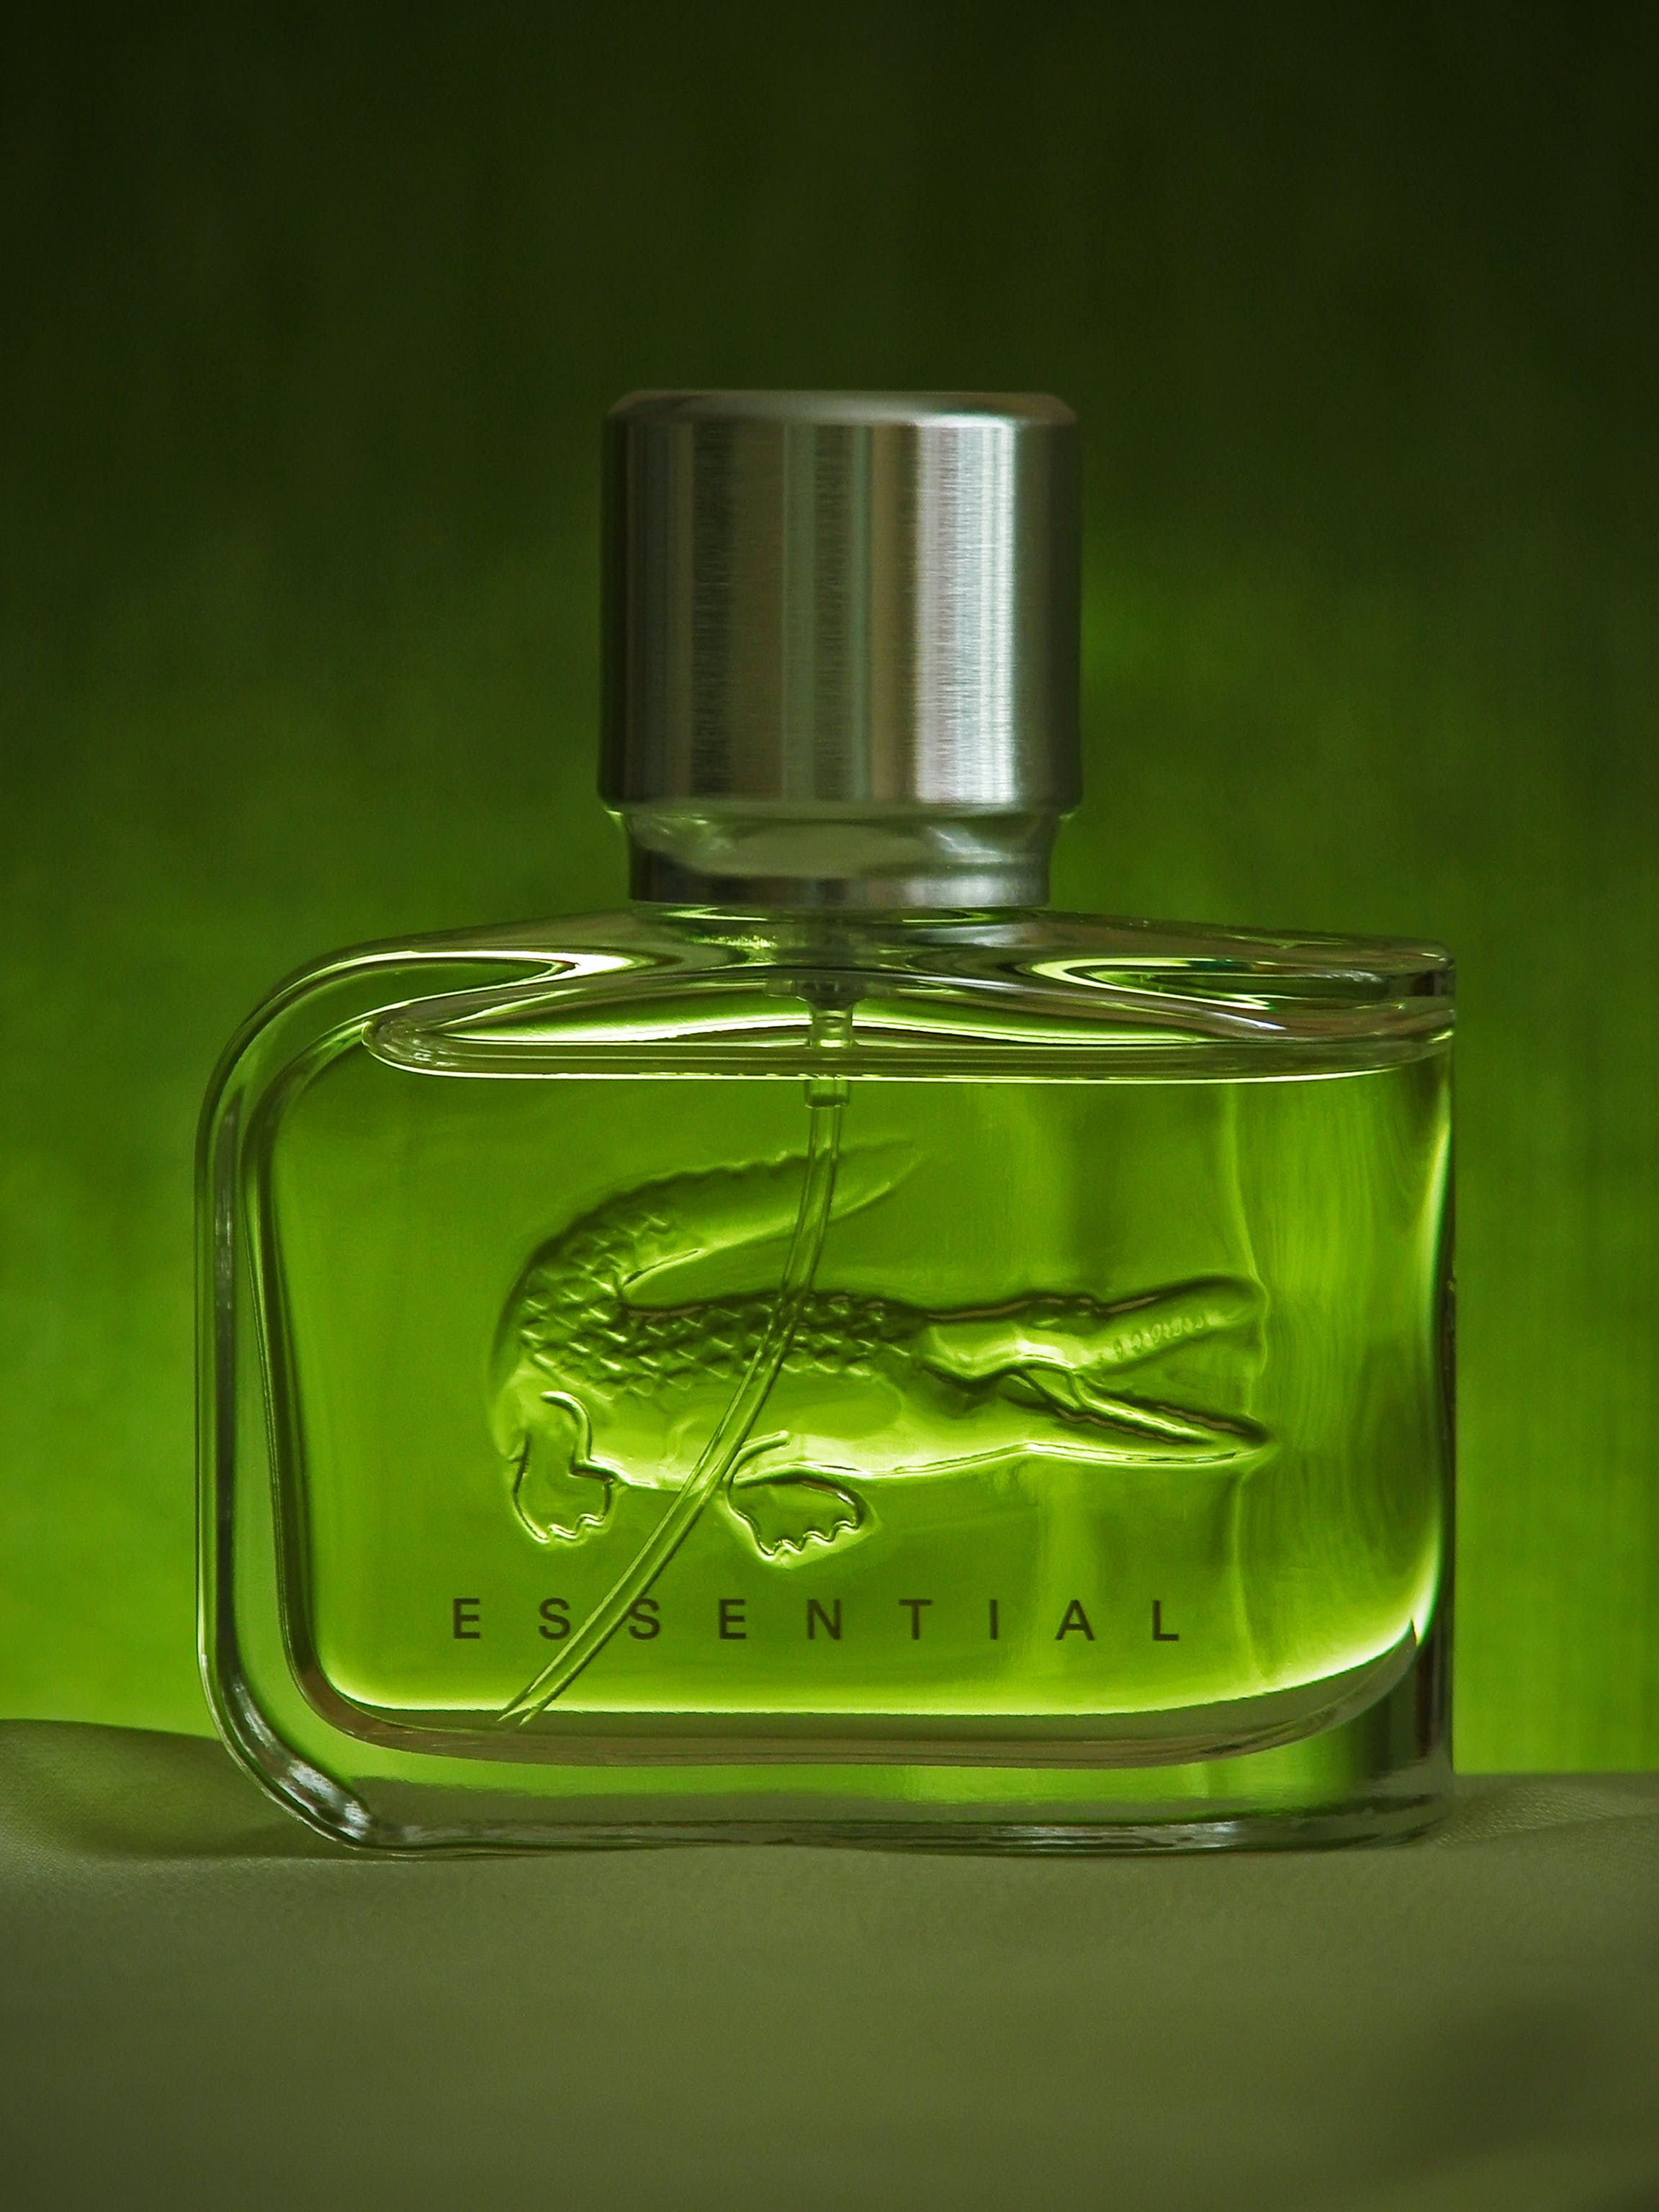 Lacoste Essential Fragrance Bottle